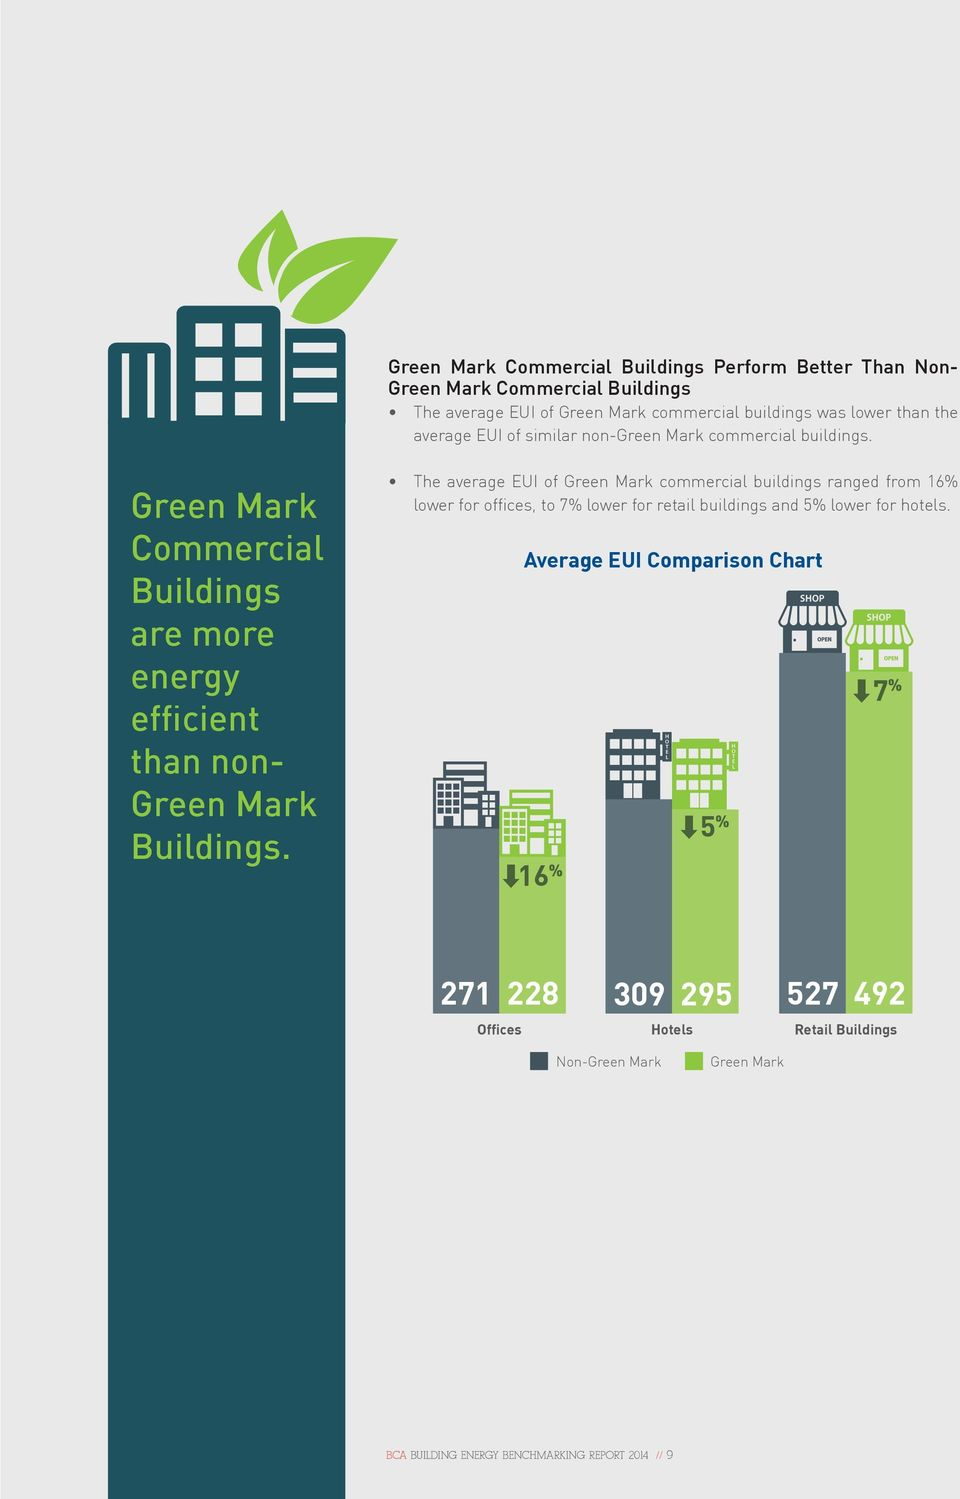 The average EUI of Green Mark commercial buildings ranged from 16% lower for offices, to 7% lower for retail buildings and 5% lower for hotels.